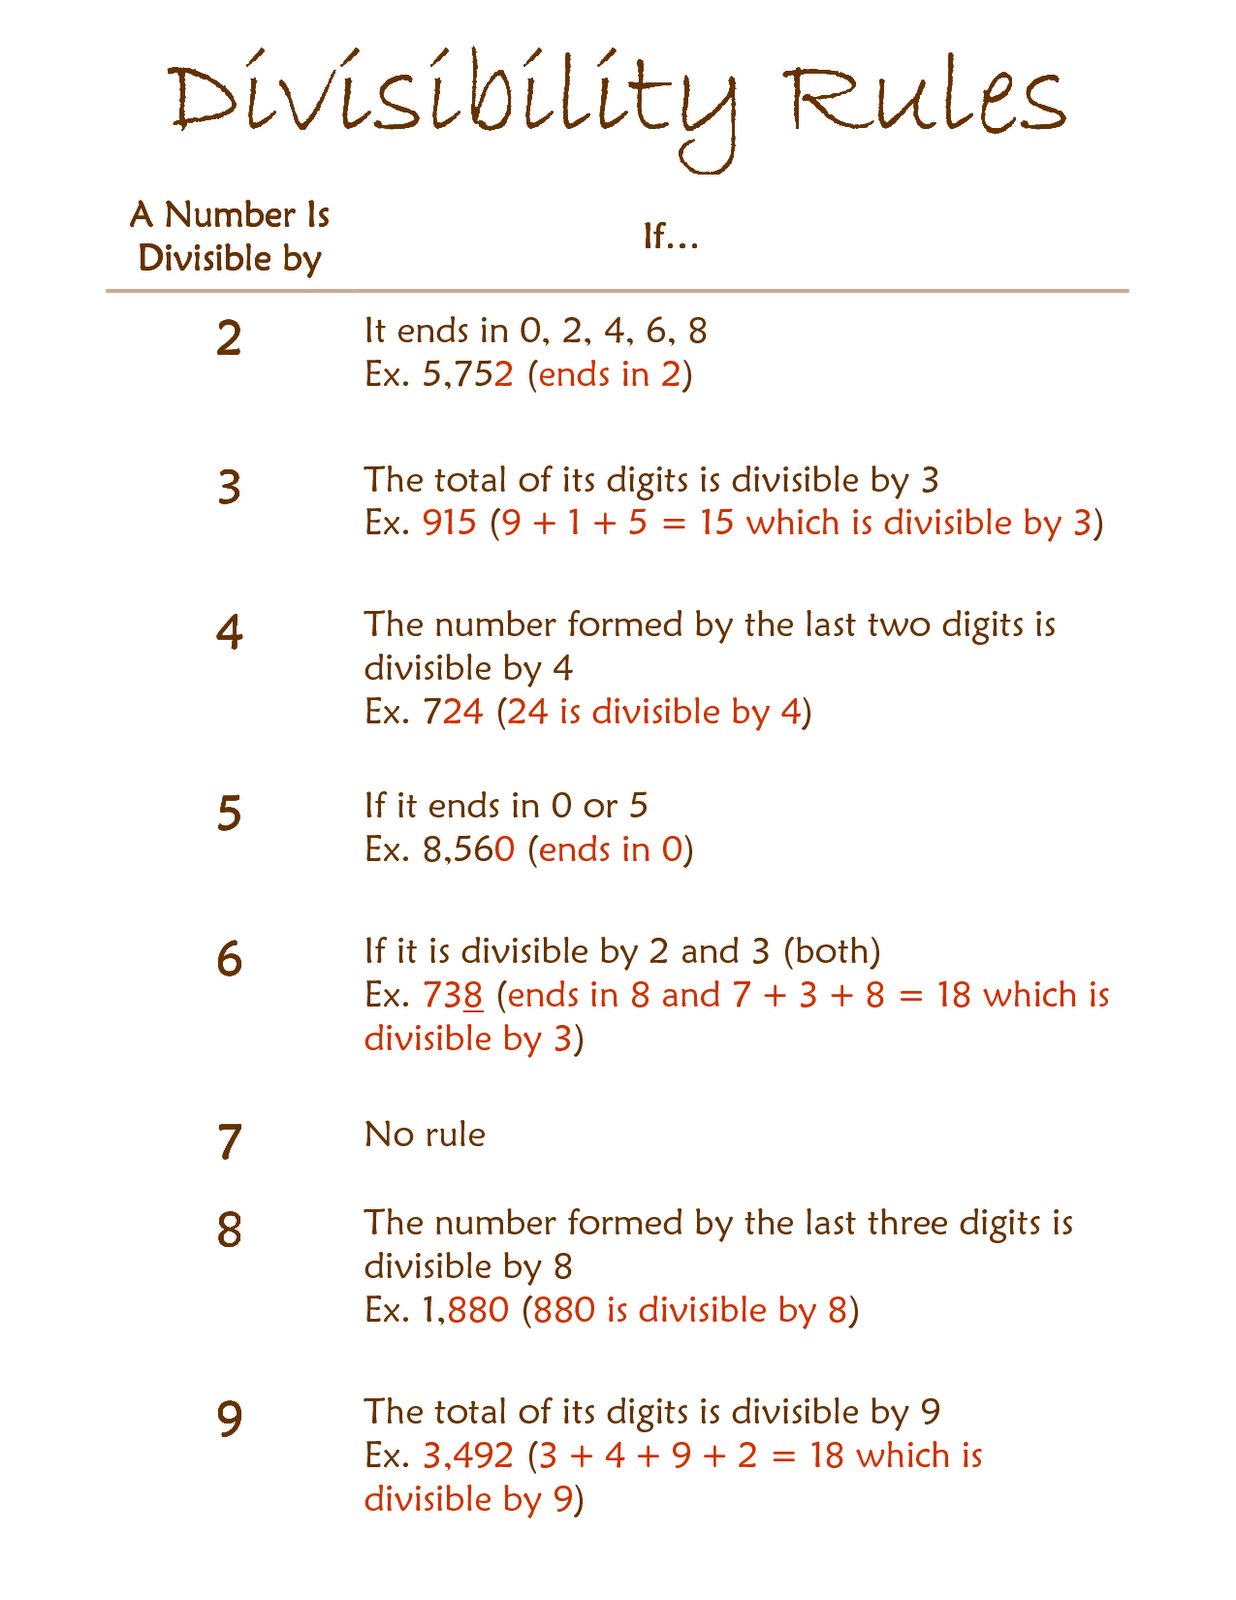 Divisibility Rules Worksheet For 5th Grade